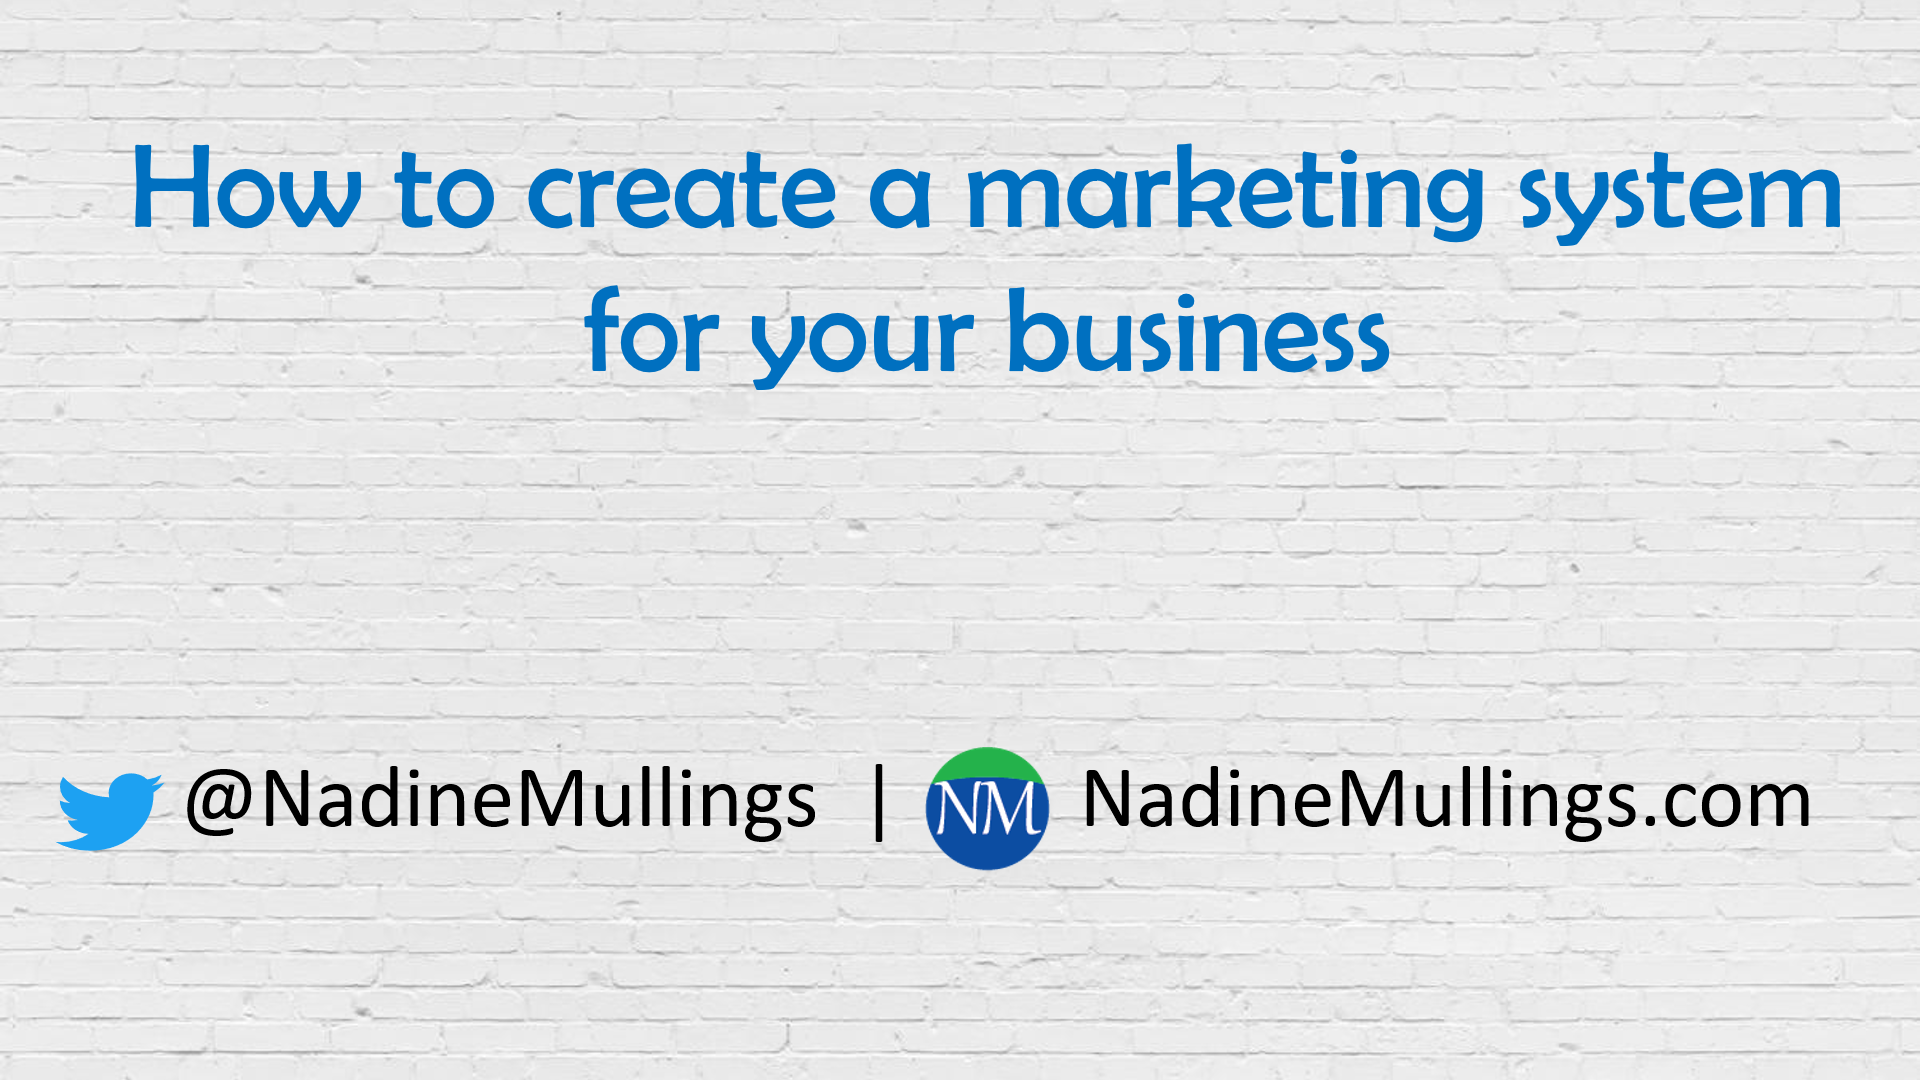 How to create a marketing system for your business